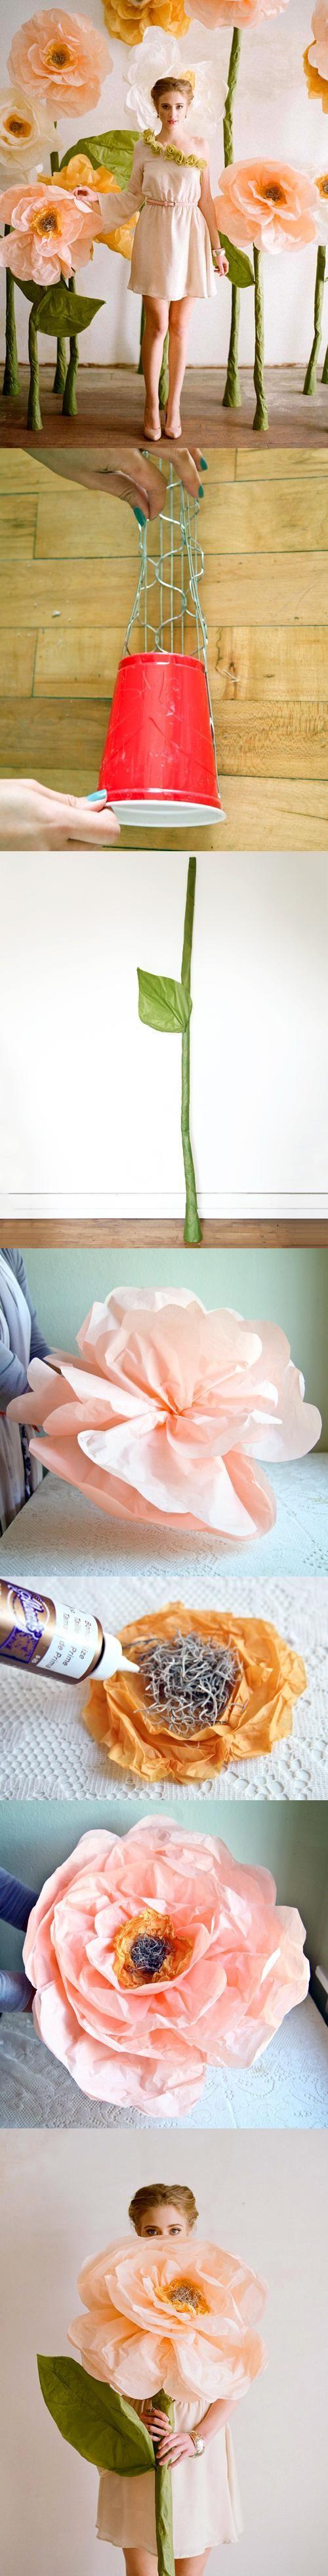 Giant Tissue Flower  Tutorial some steps  paper flowers